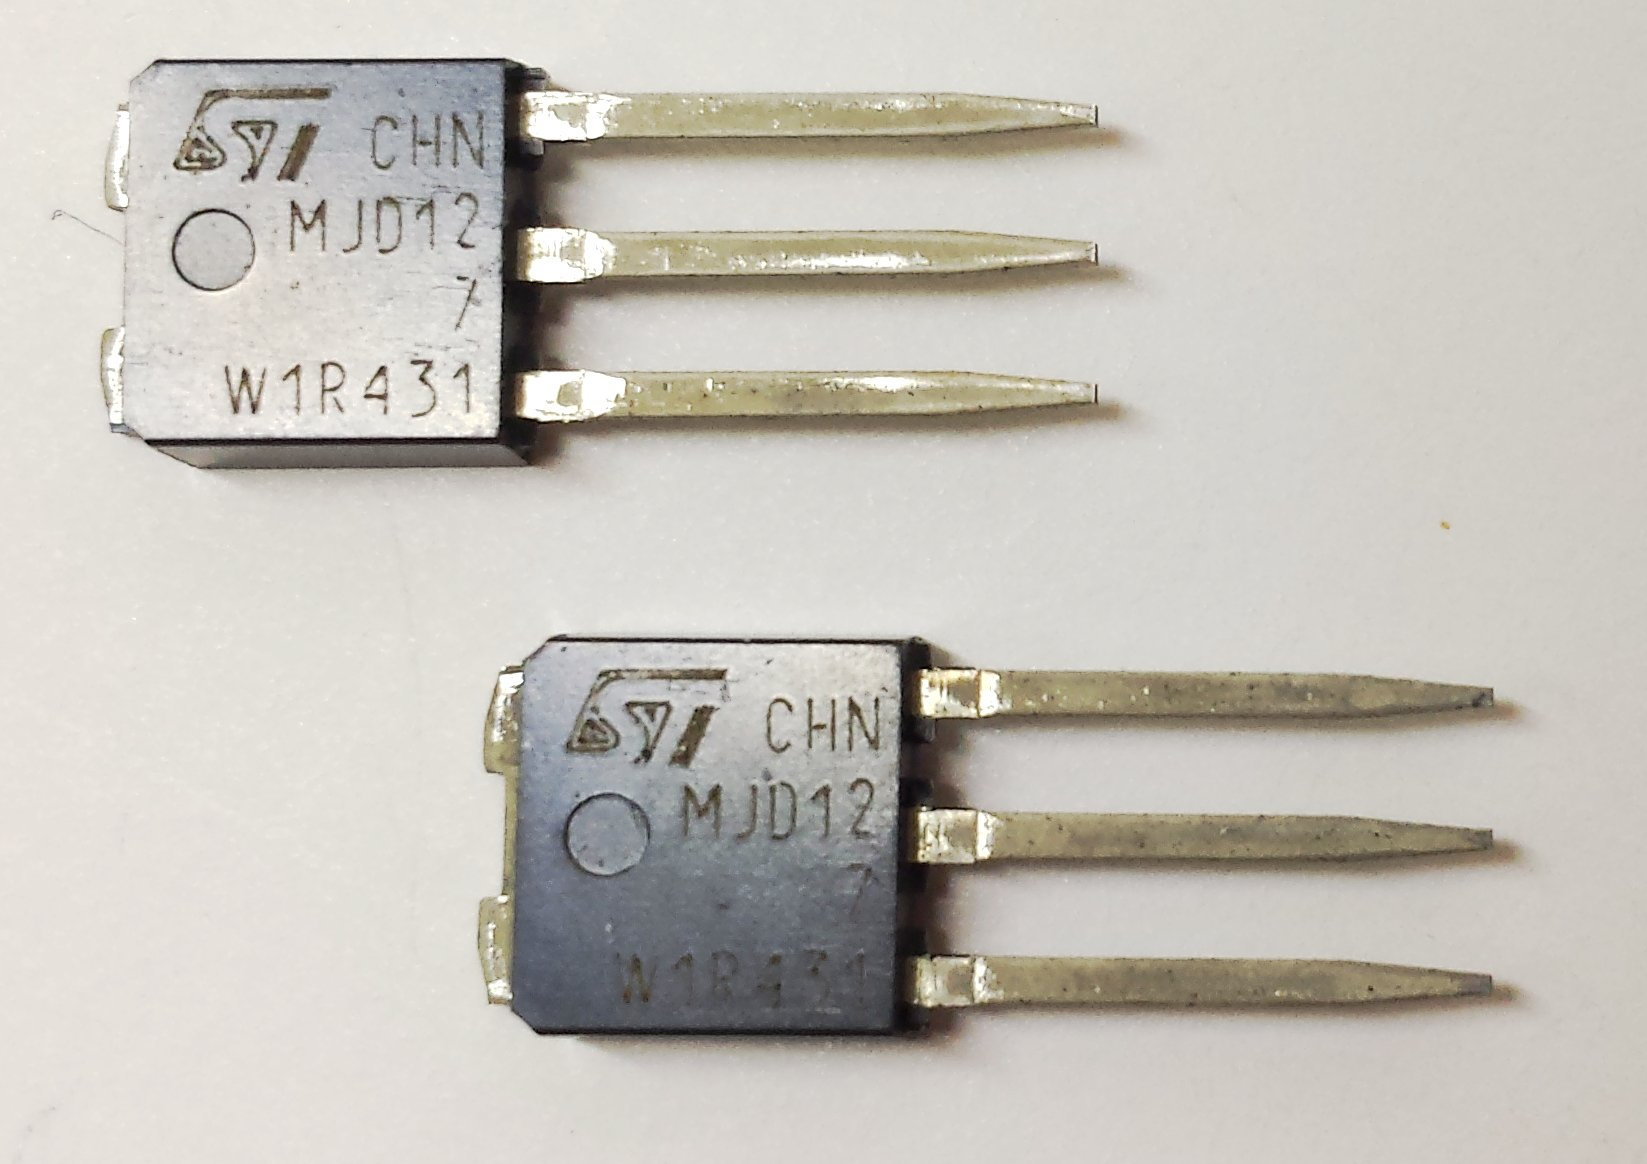 20 pieces MJD127-1 PNP POWER DARLINGTON TRANSISTOR | 5A | Vceo 100V | Vcbo 100V | Ptot 20W | IPAK (TO-251) Package